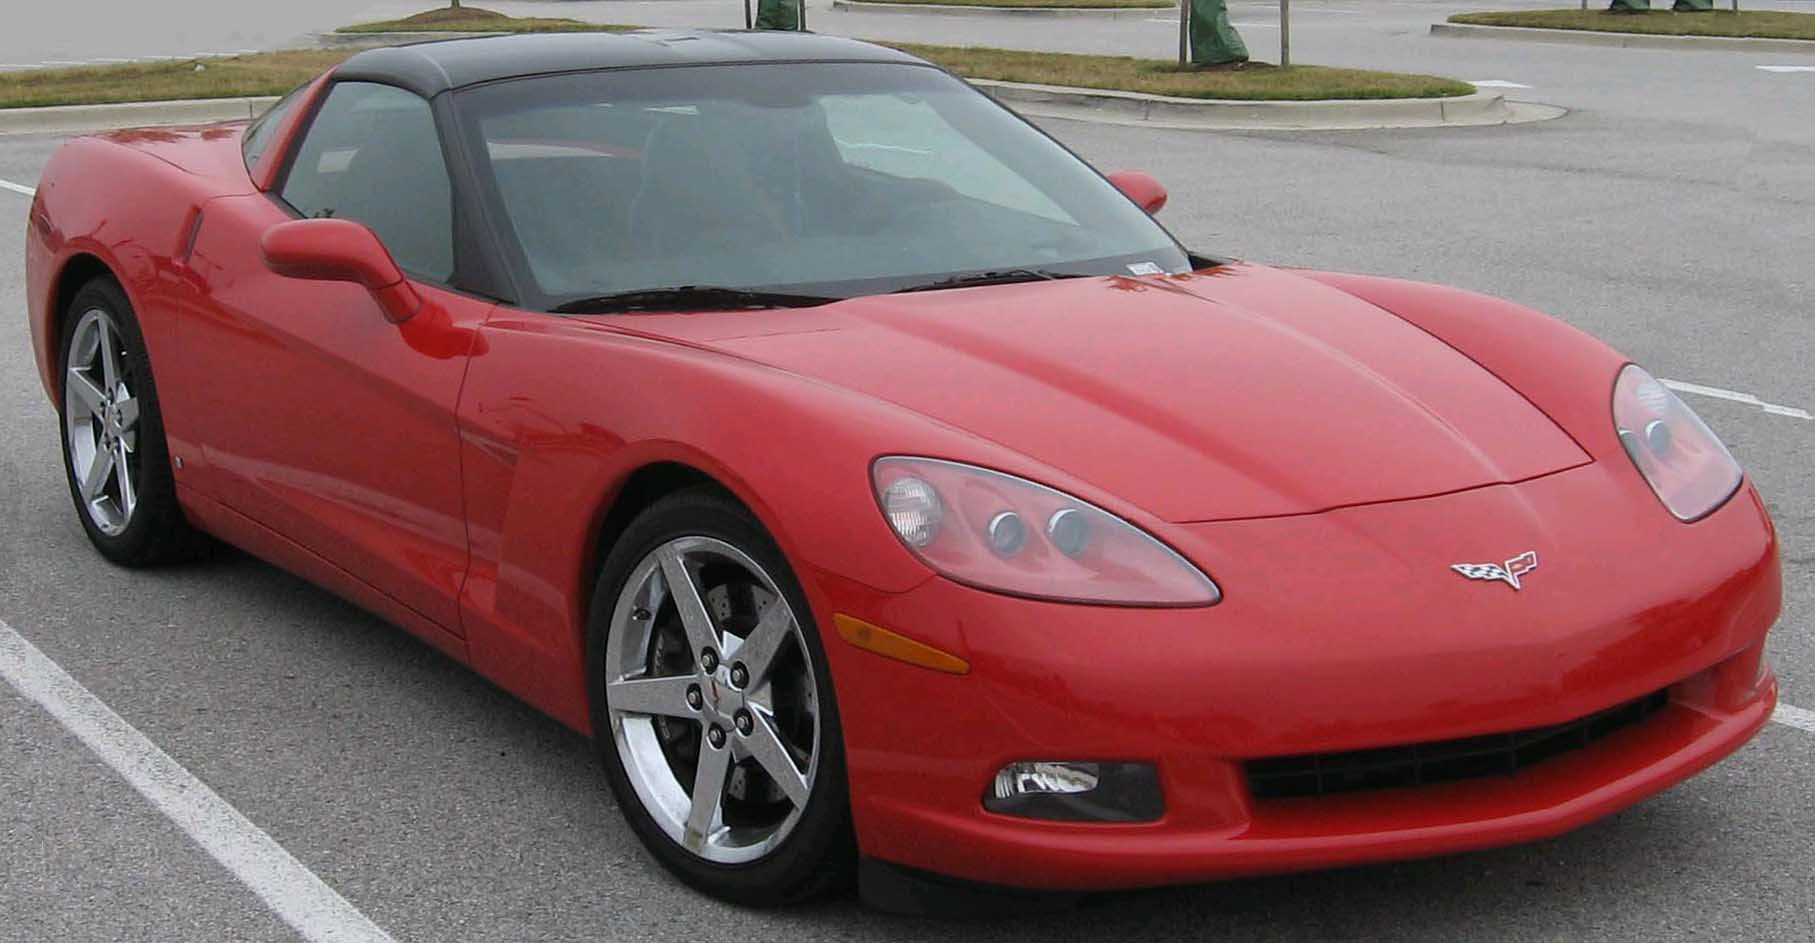 Cars chevrolet corvette c5 coupe 2003